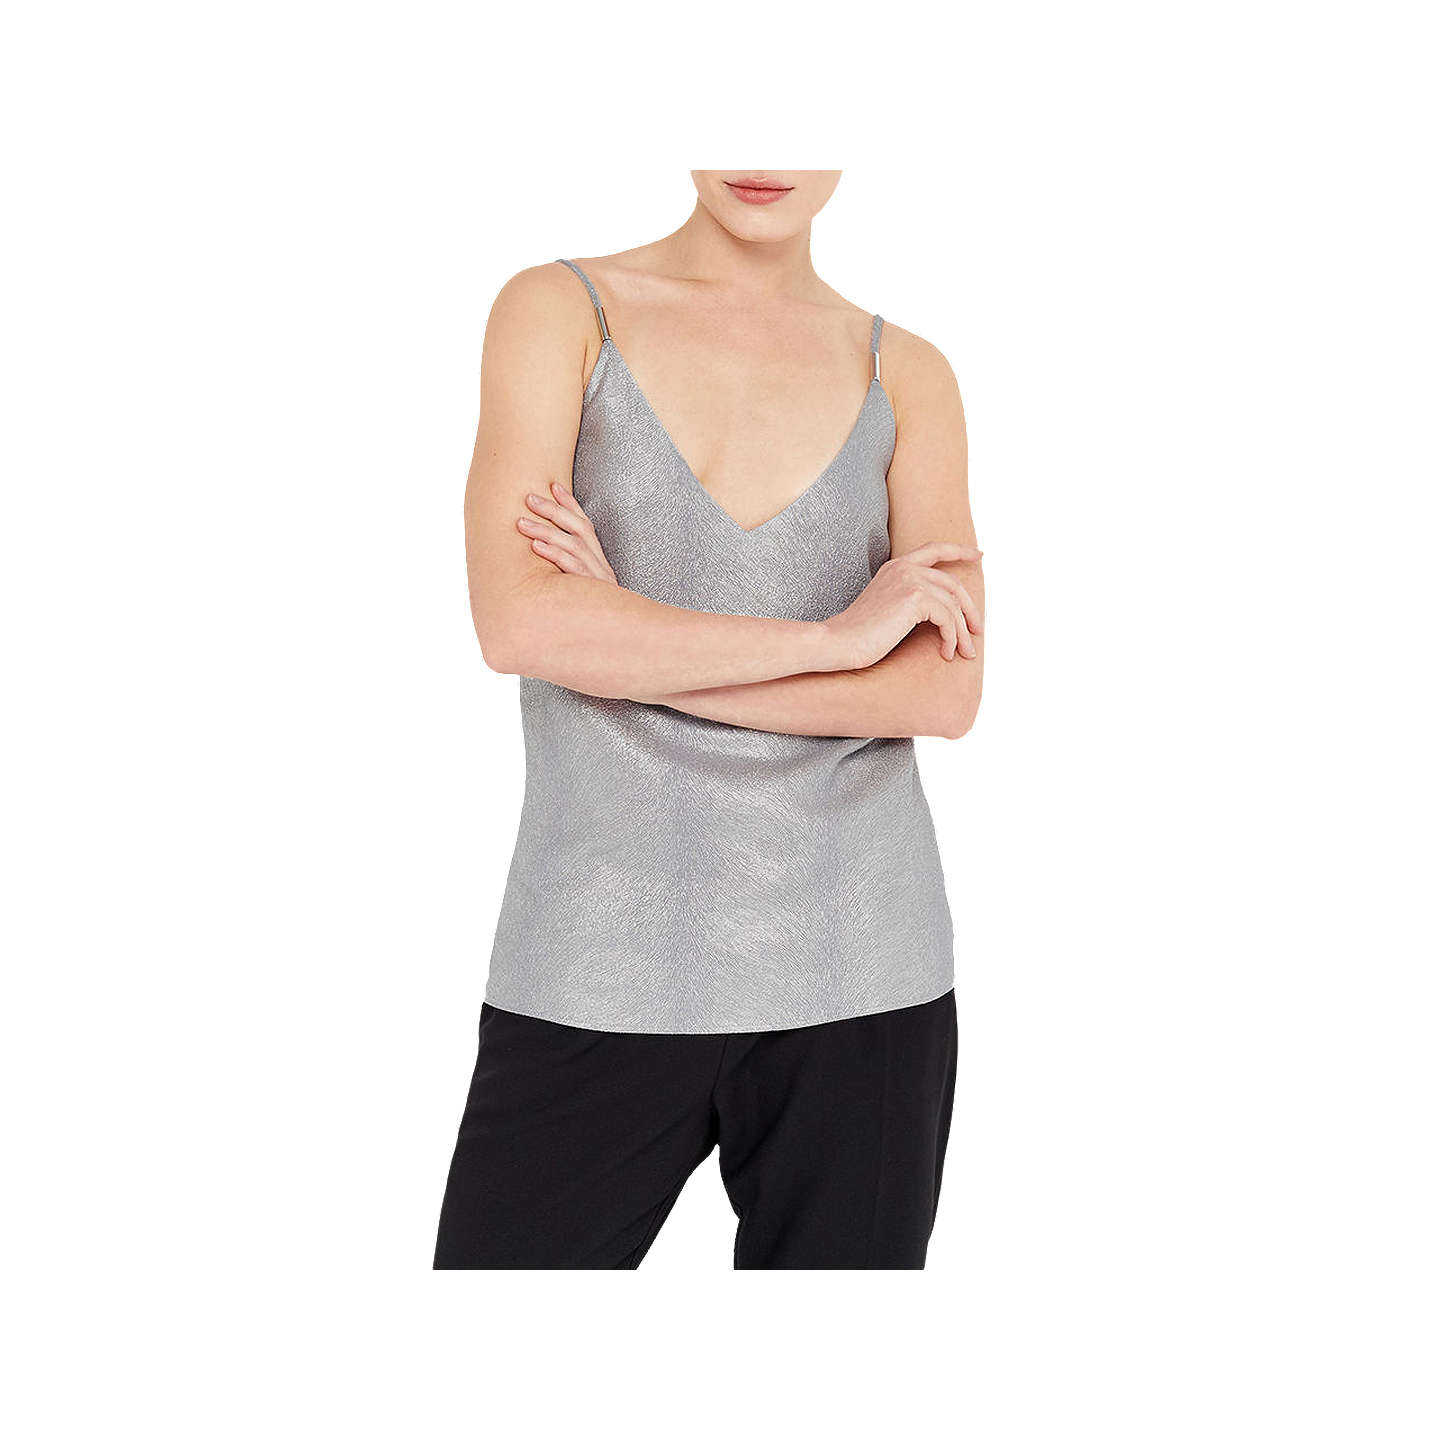 BuyOasis Animal Foil Cami, Silver, 6 Online at johnlewis.com